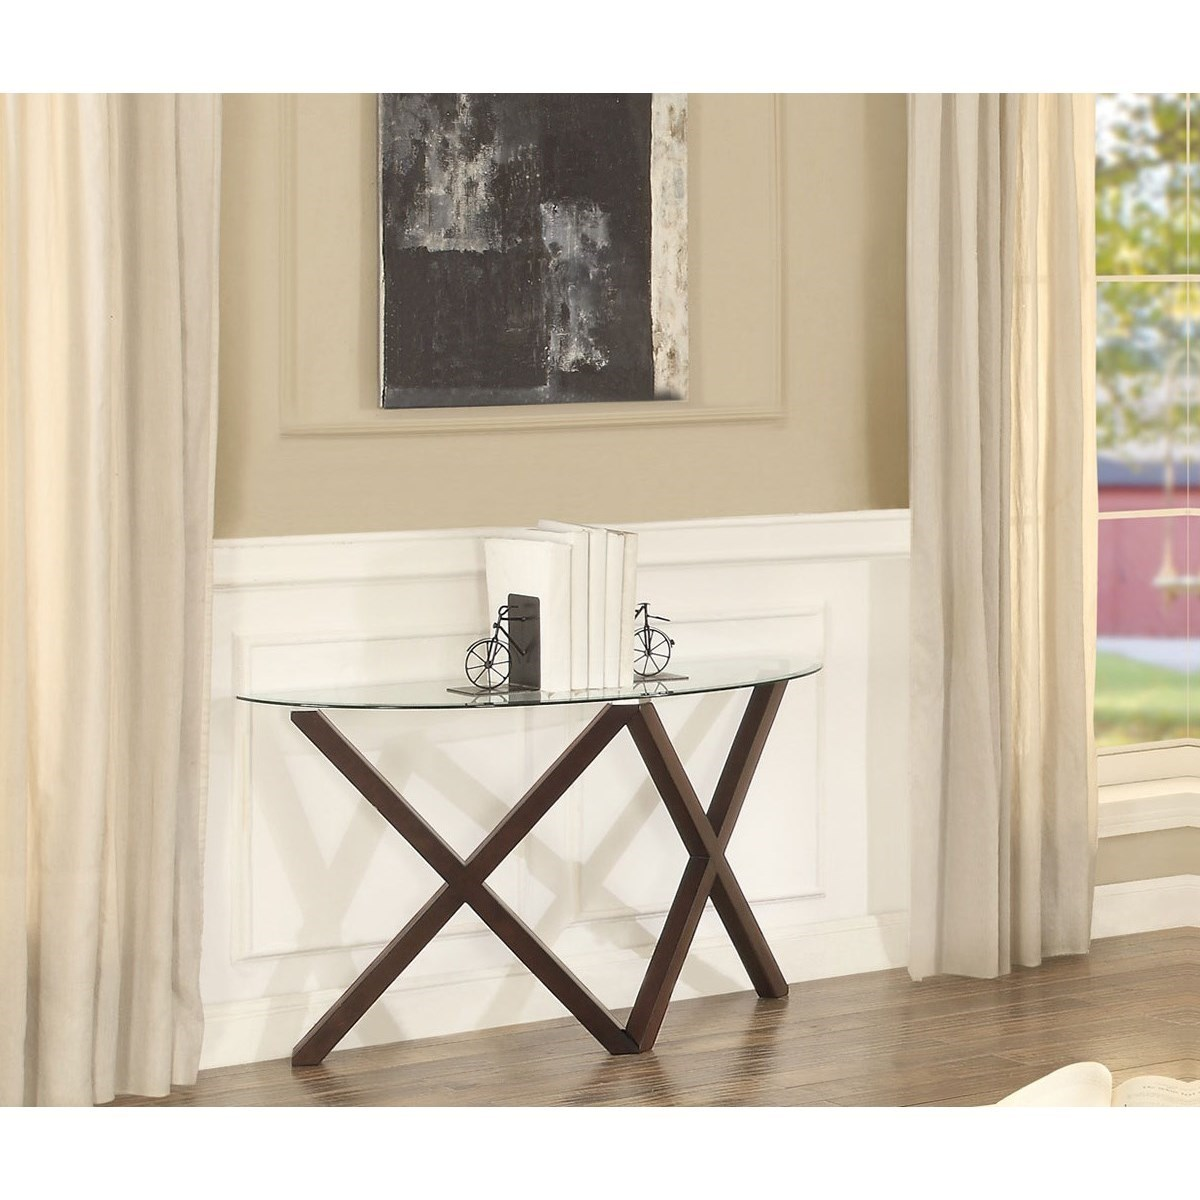 Homelegance Halston 2952 05 Contemporary Sofa Table With